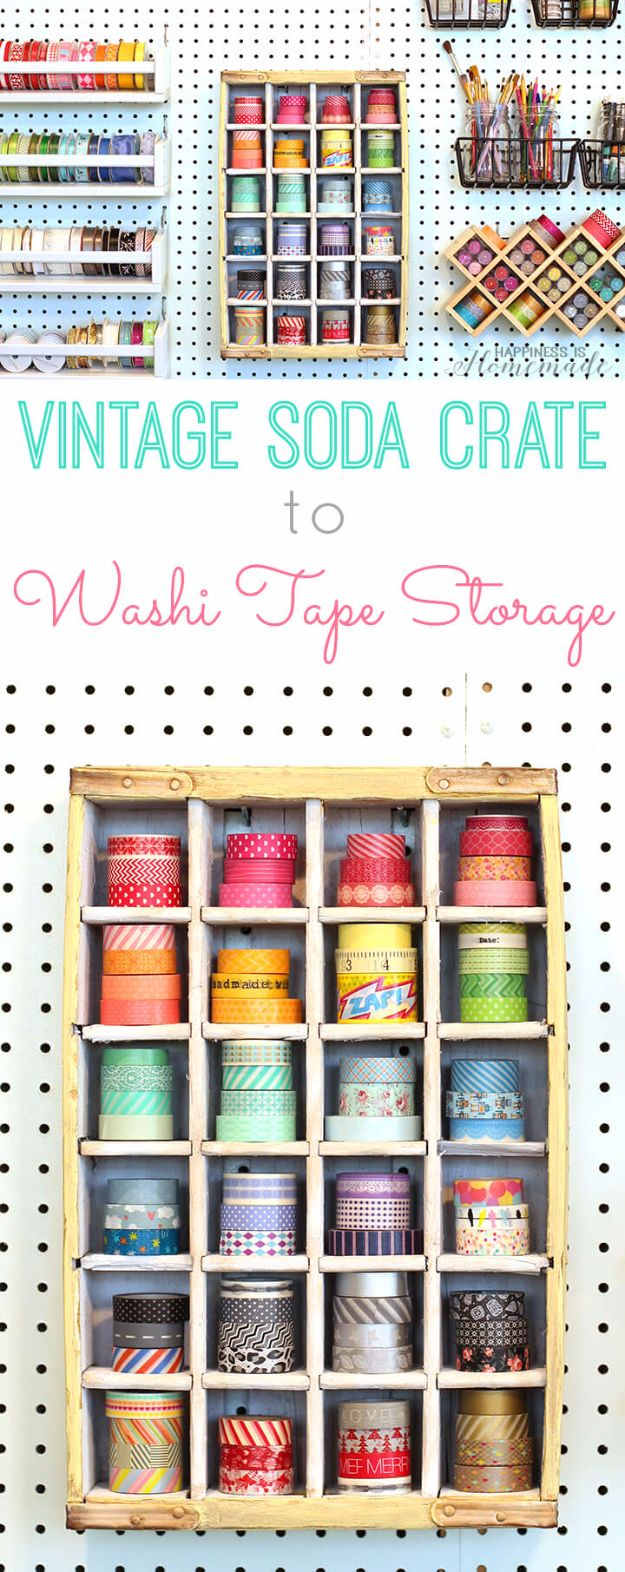 DIY Craft Room Storage Ideas and Craft Room Organization Projects - Vintage Soda Crate Storage - Cool Ideas for Do It Yourself Craft Storage, Craft Room Decor and Organizing Project Ideas - fabric, paper, pens, creative tools, crafts supplies, shelves and sewing notions http://diyjoy.com/diy-craft-room-storage